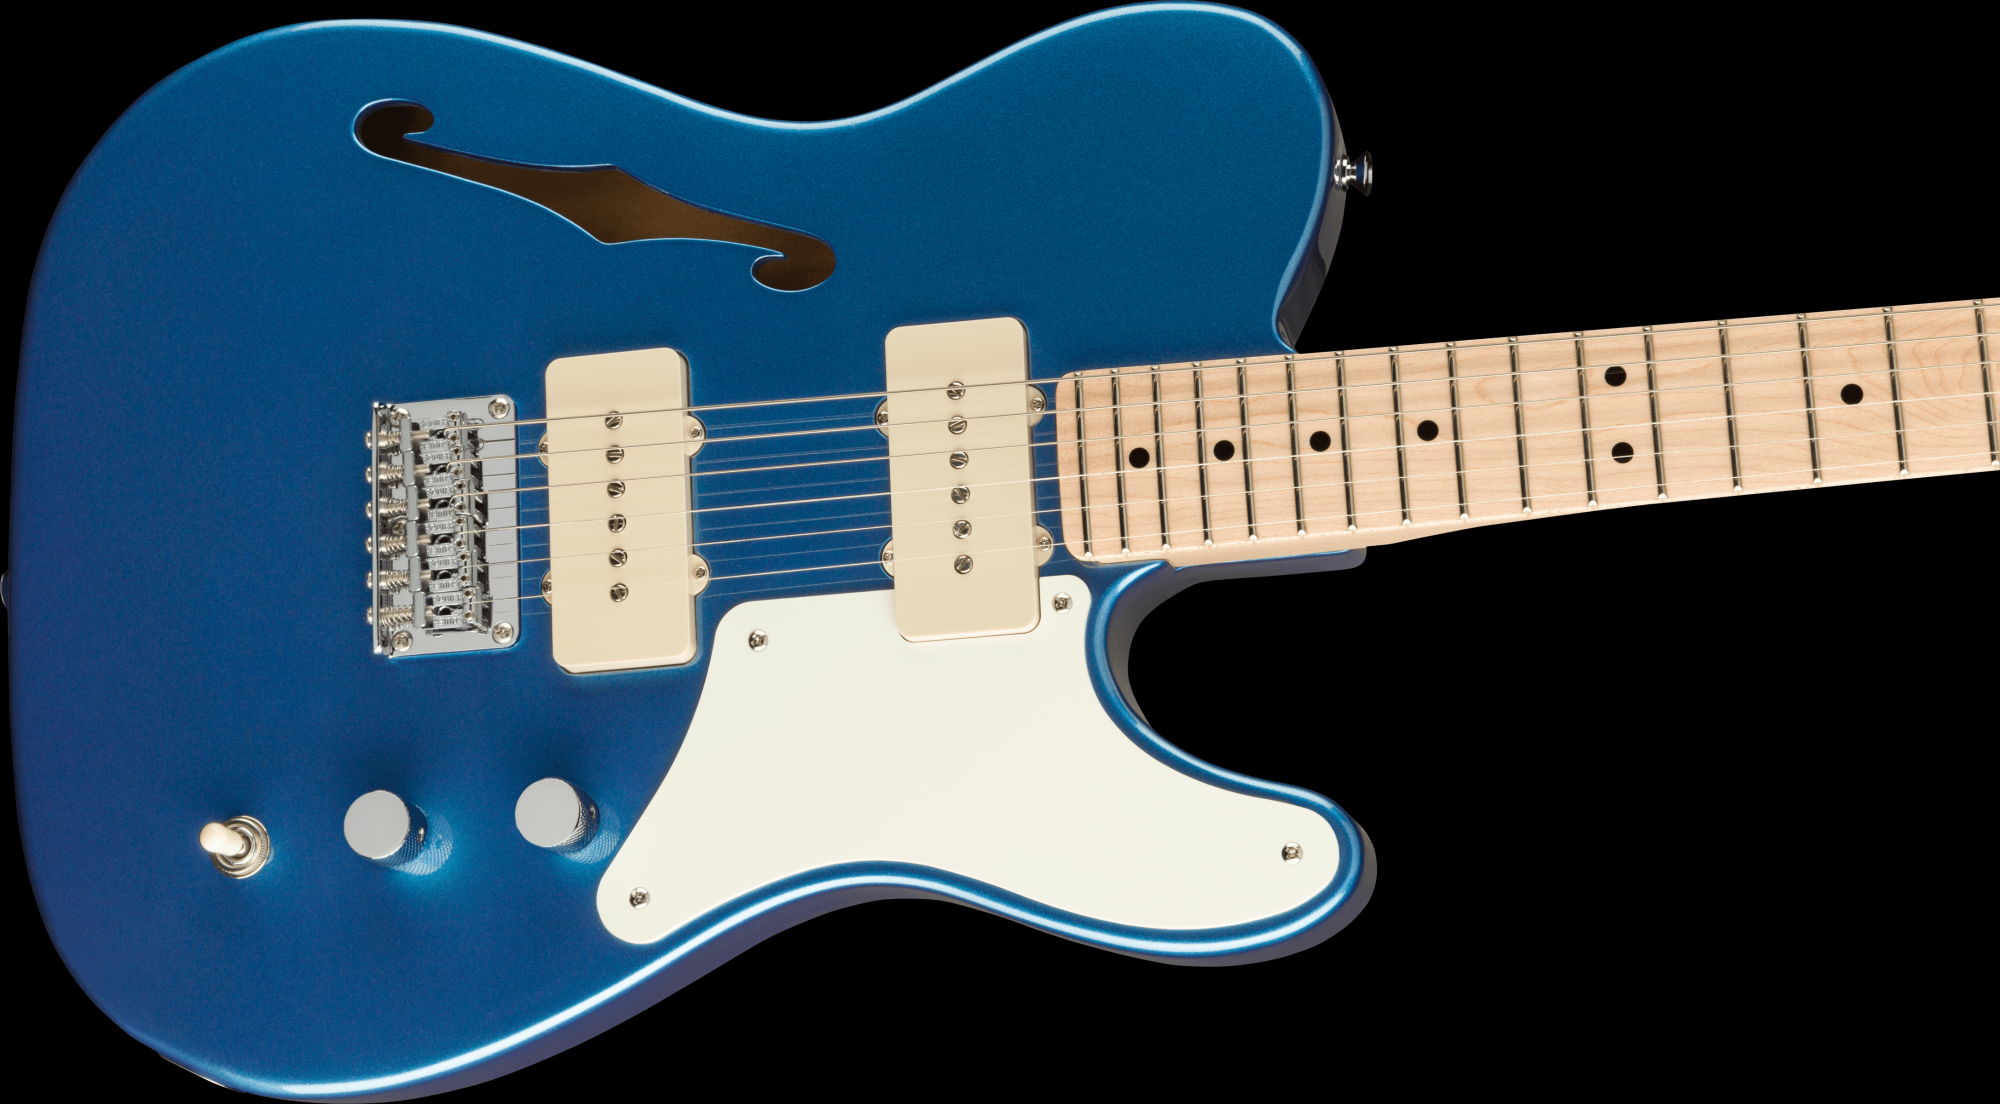 PRE-ORDER: Squier Paranormal Cabronita Telecaster Thinline Maple Fingerboard Gold Anodized Pickguard - Lake Placid Blue